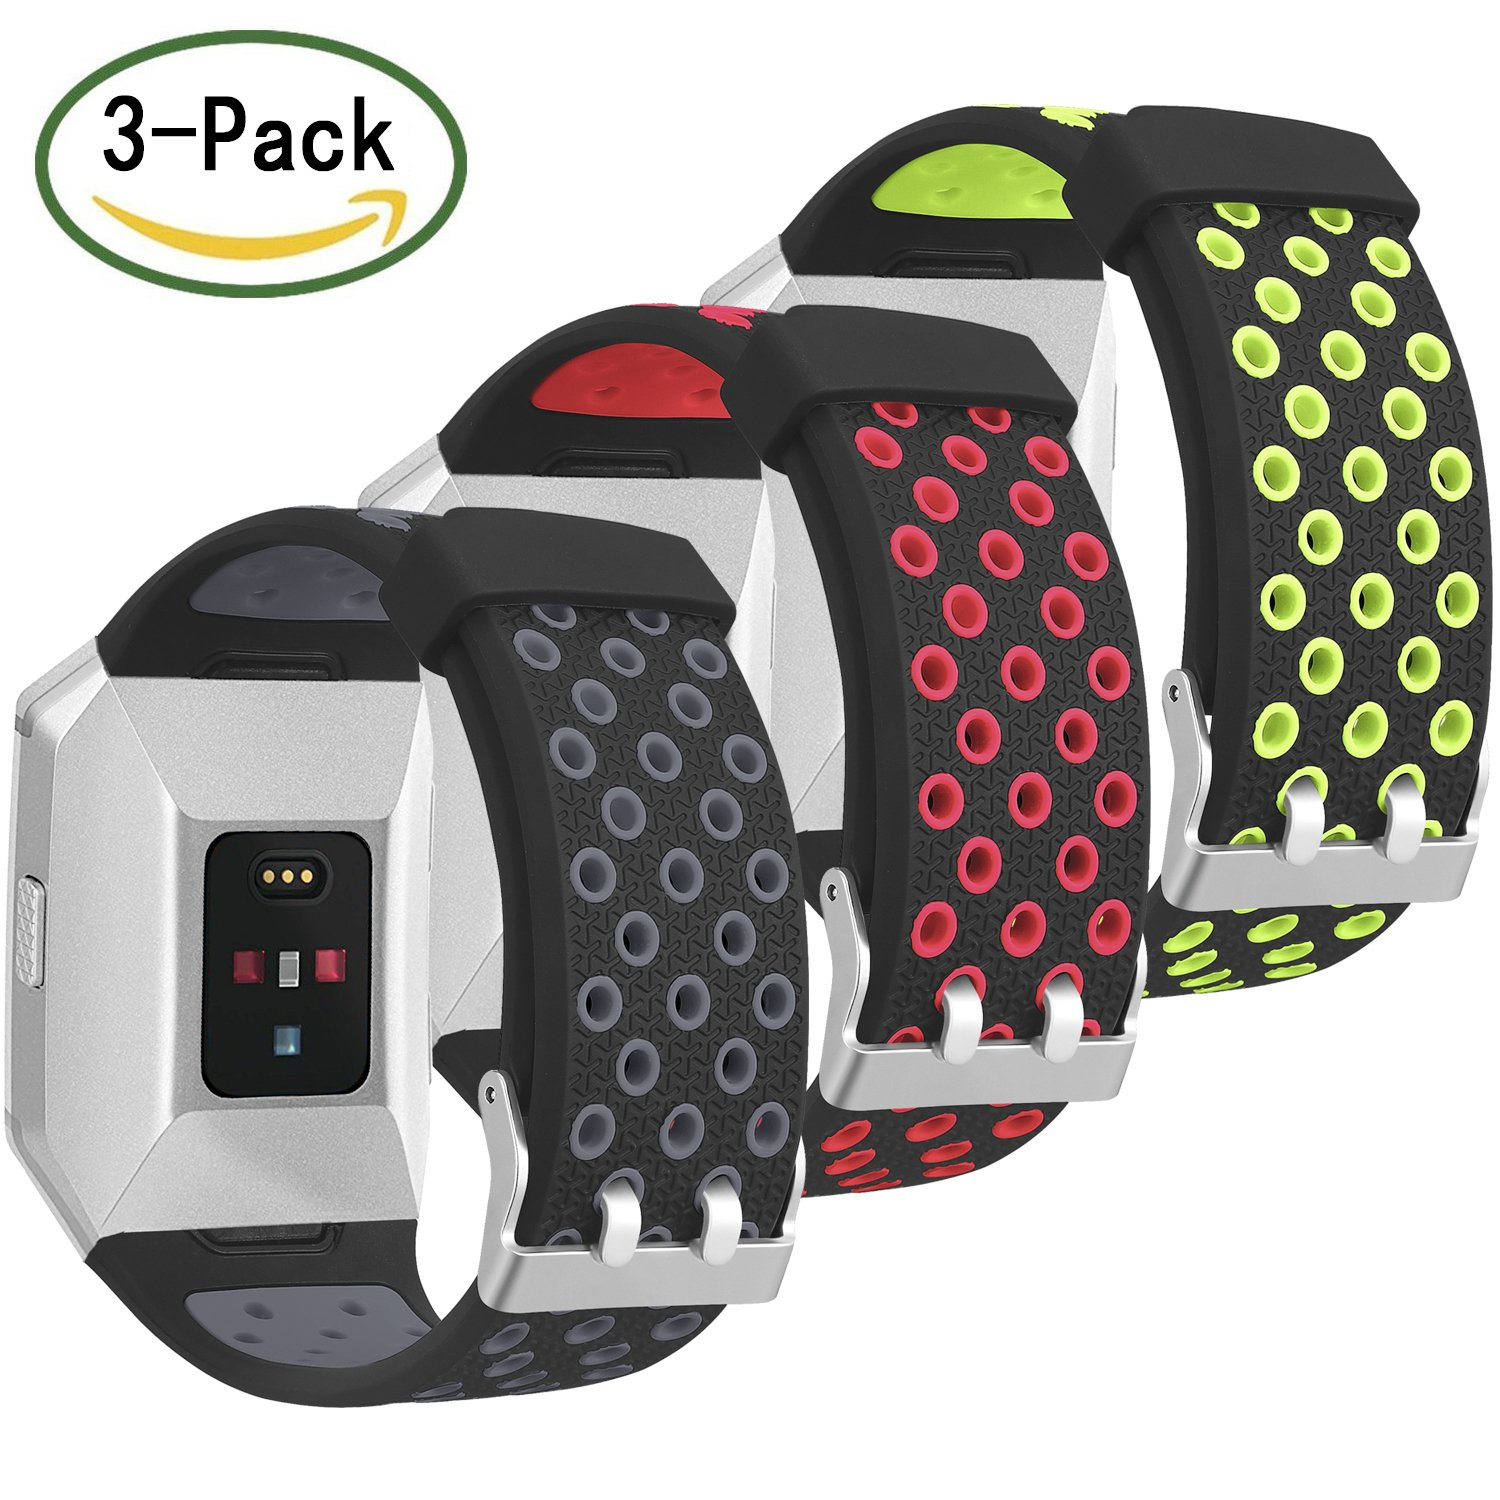 For Fitbit Ionicバンド、Skylet 3パックソフト通気性アクセサリーWristbands for Fitbit Ionicブレスレットwith Buckle (トラッカーなし) 6.3-9.3 Inches/160-235mm|3PC: Black-Gray&Black-Red&Black-Green 3PC: Black-Gray&Black-Red&Black-Green 6.3-9.3 Inches/160-235mm B078JJRSHH